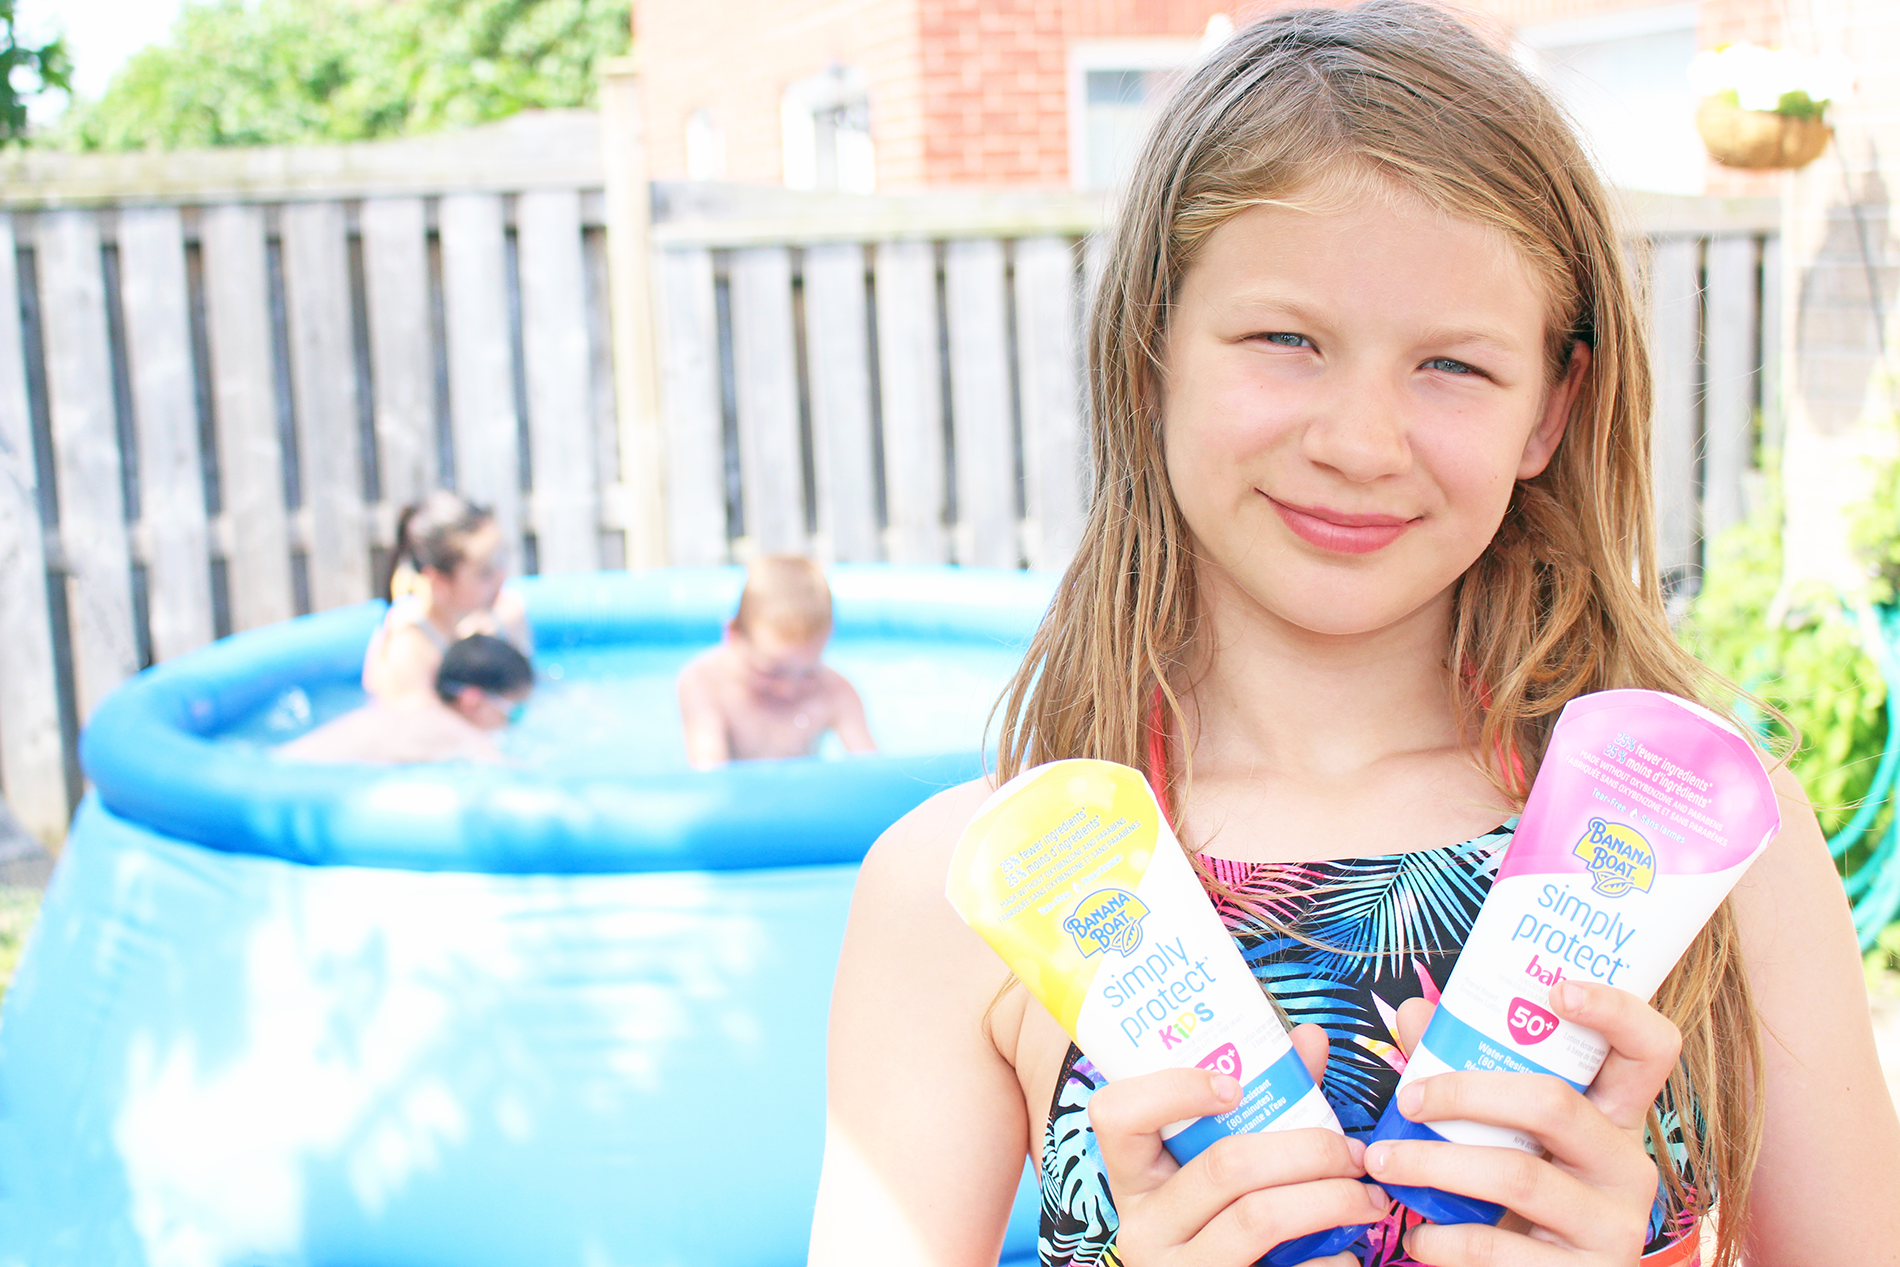 Keeping The Kids Protected During Summer Fun With Simply Protect Kids and Baby Lotion